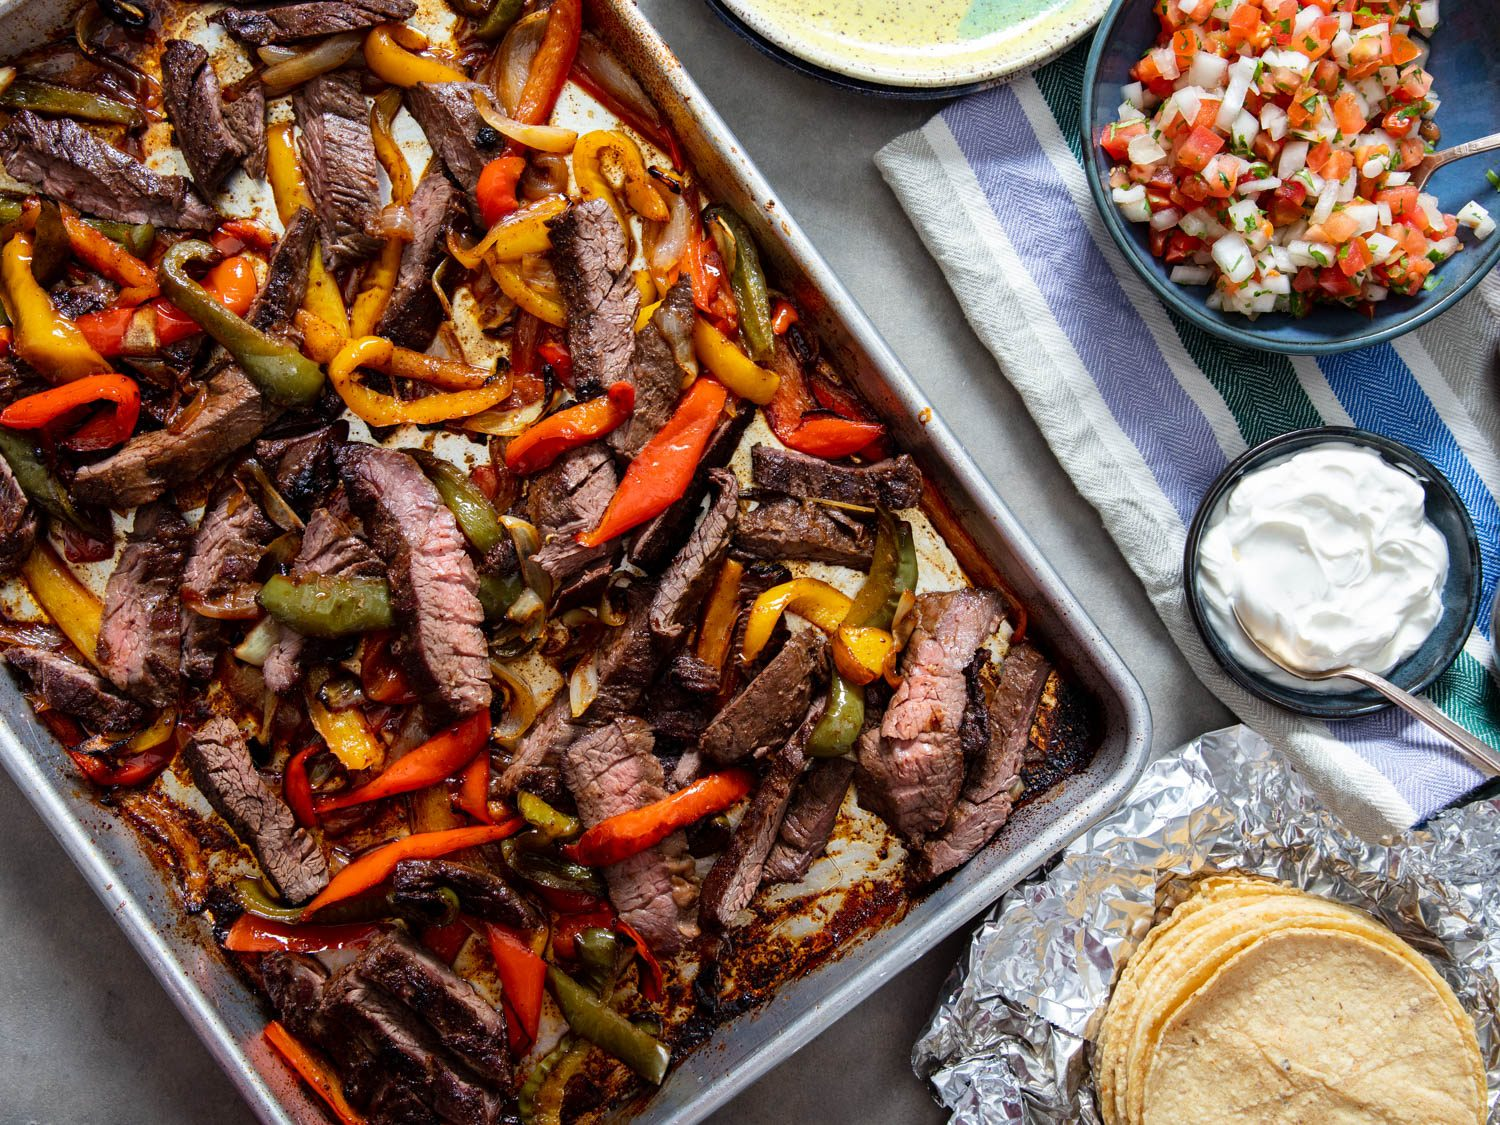 Sheet-Pan Skirt Steak Fajitas